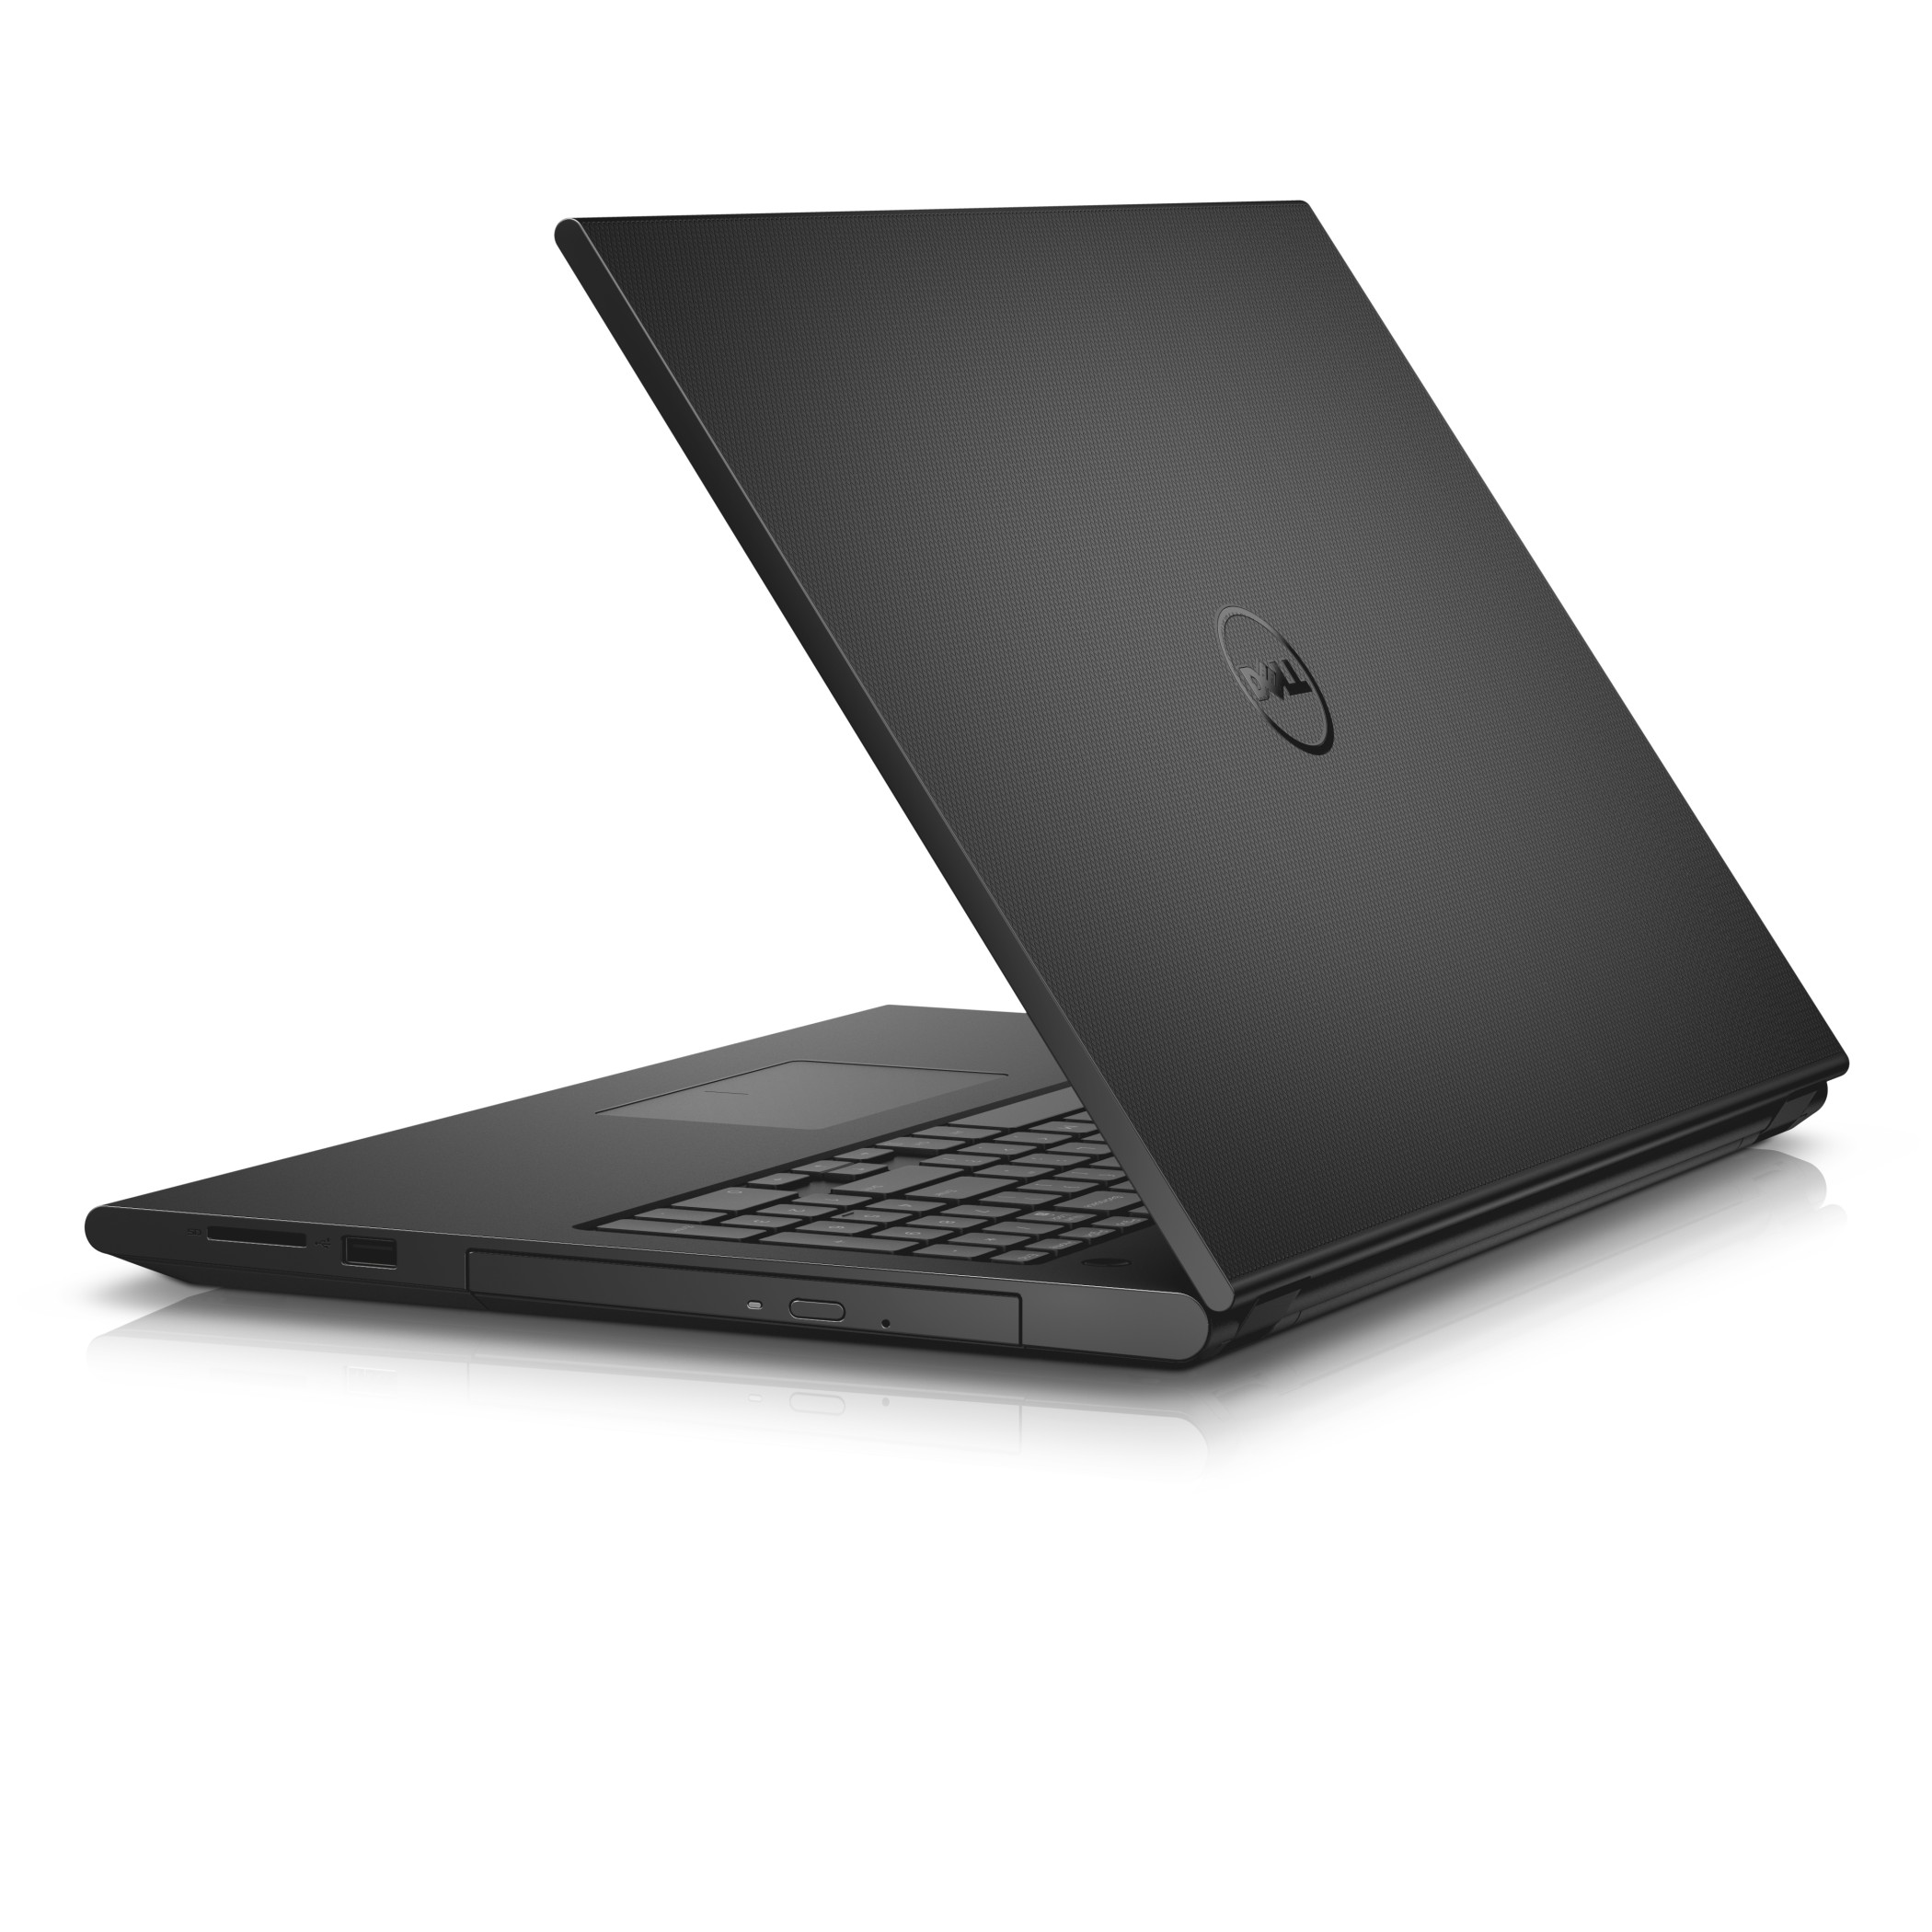 Dell Inspiron 15 3000 Series Non-Touch (Model 3543) notebook computer, with Broadwell processor.